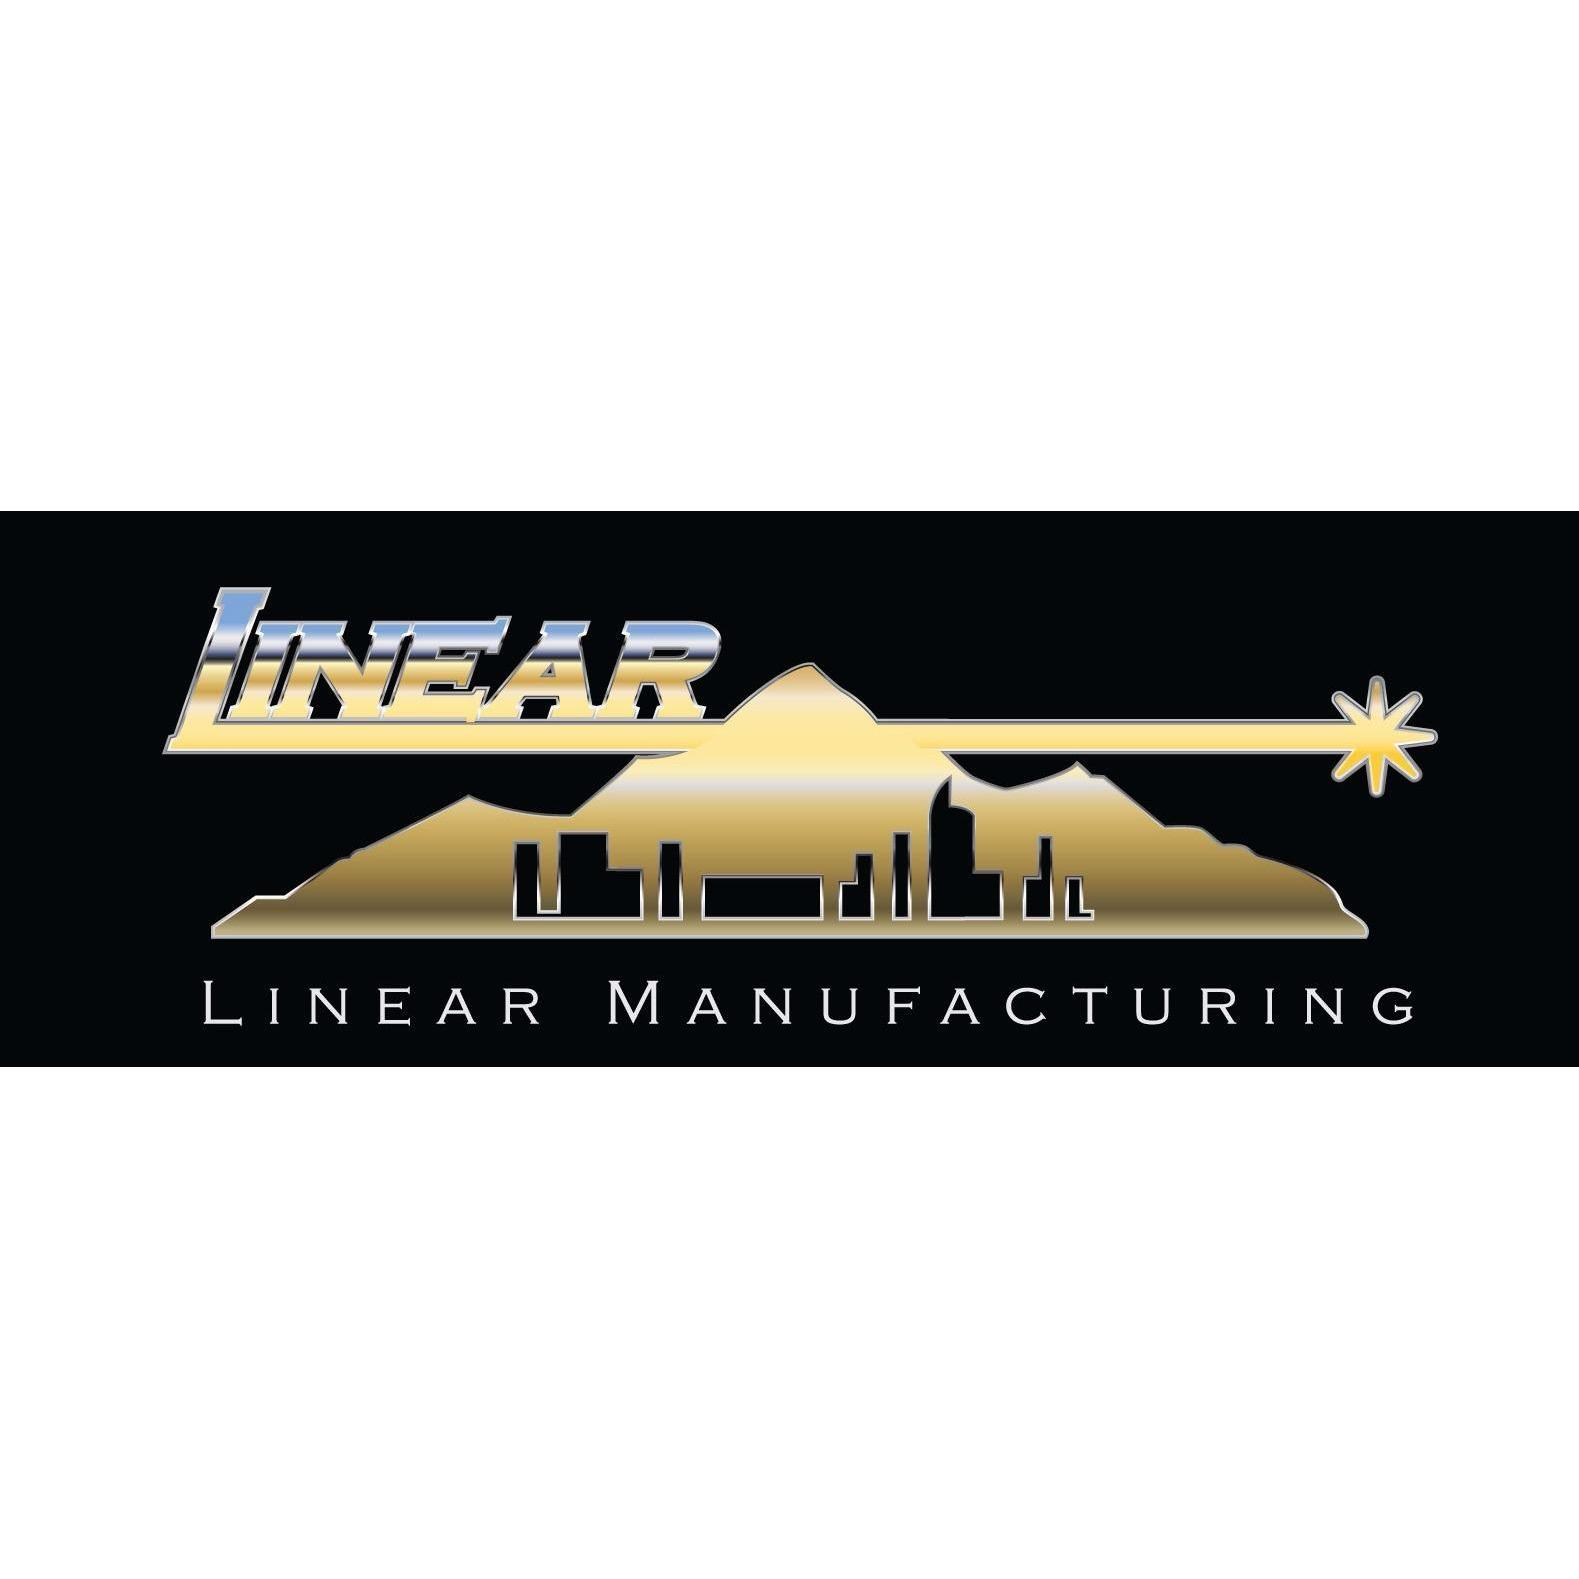 Linear Manufacturing